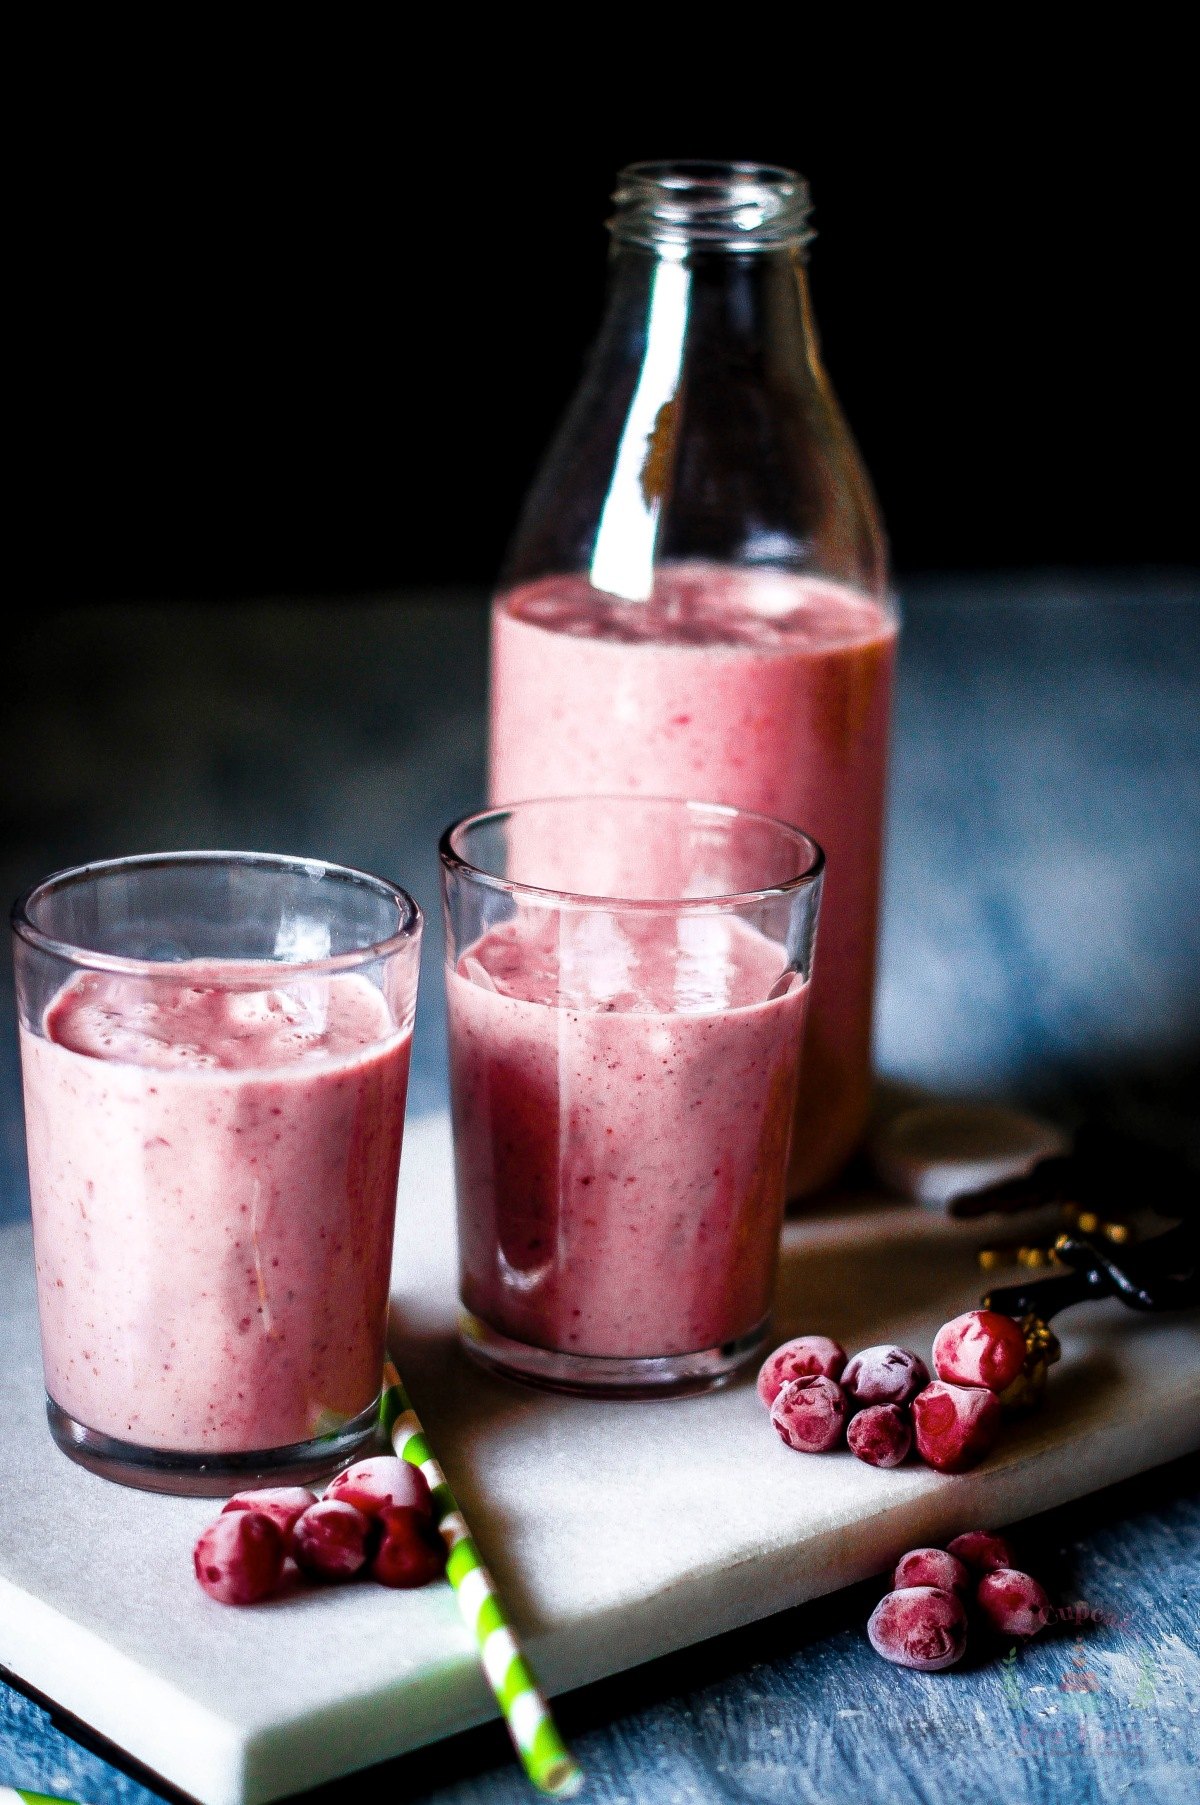 Cranberry and Apple Oats Smoothie – A sour but healthy smoothie